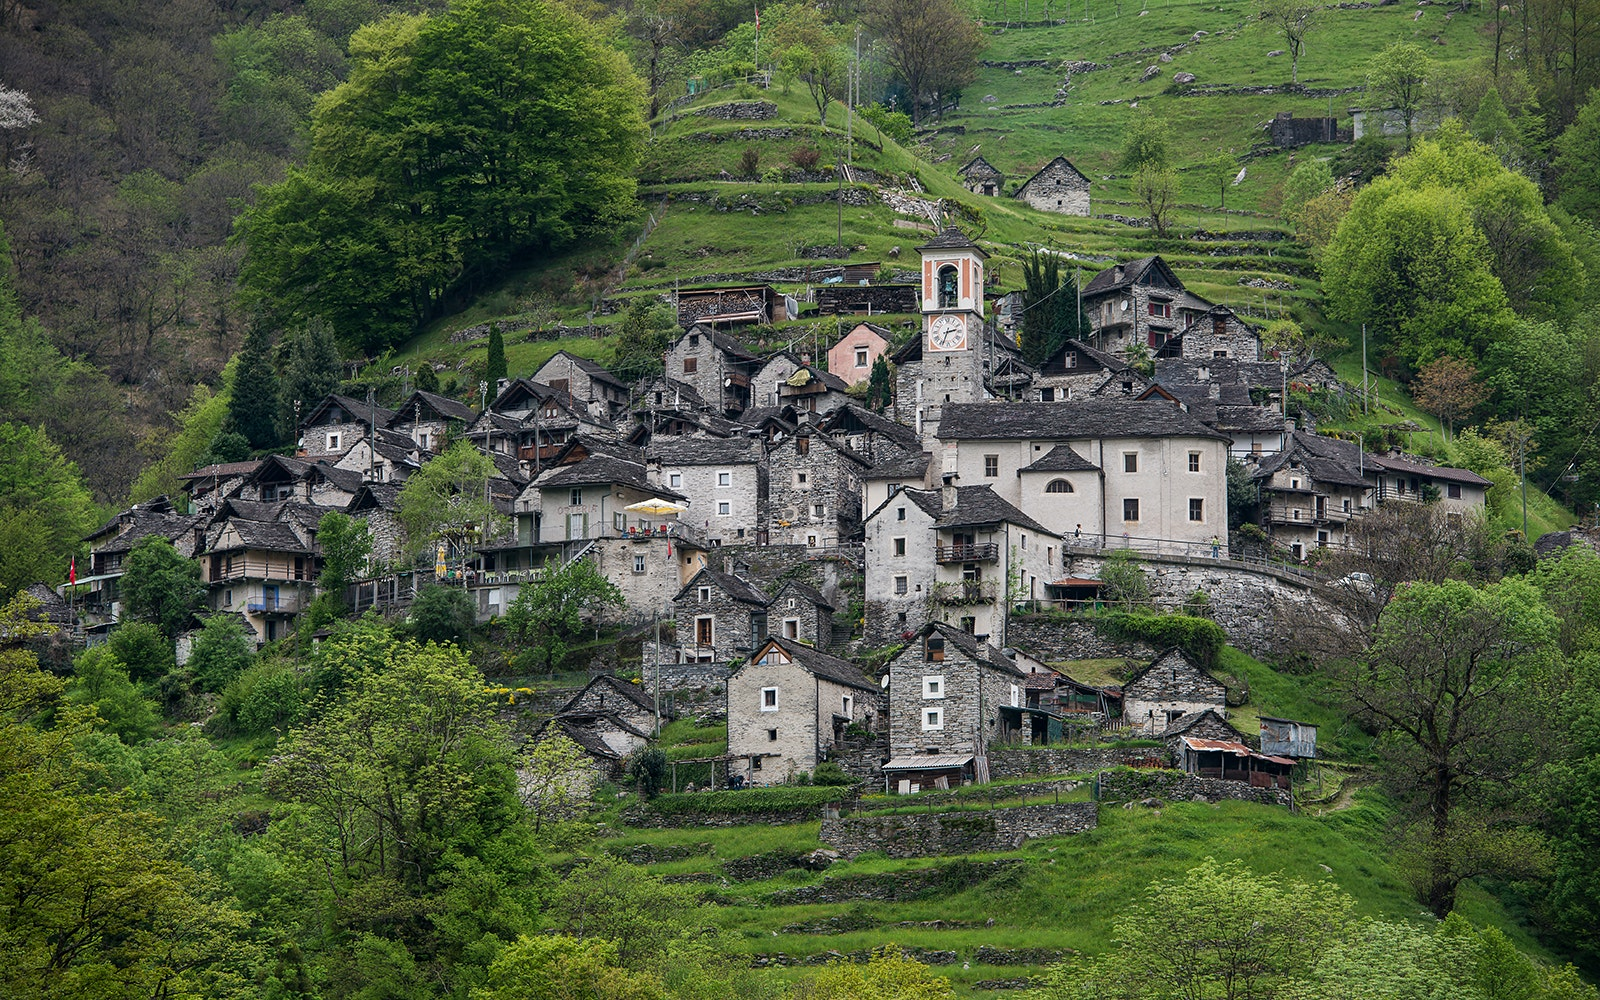 The town of Corippo in Switzerland will become the country's first albergo diffuso.